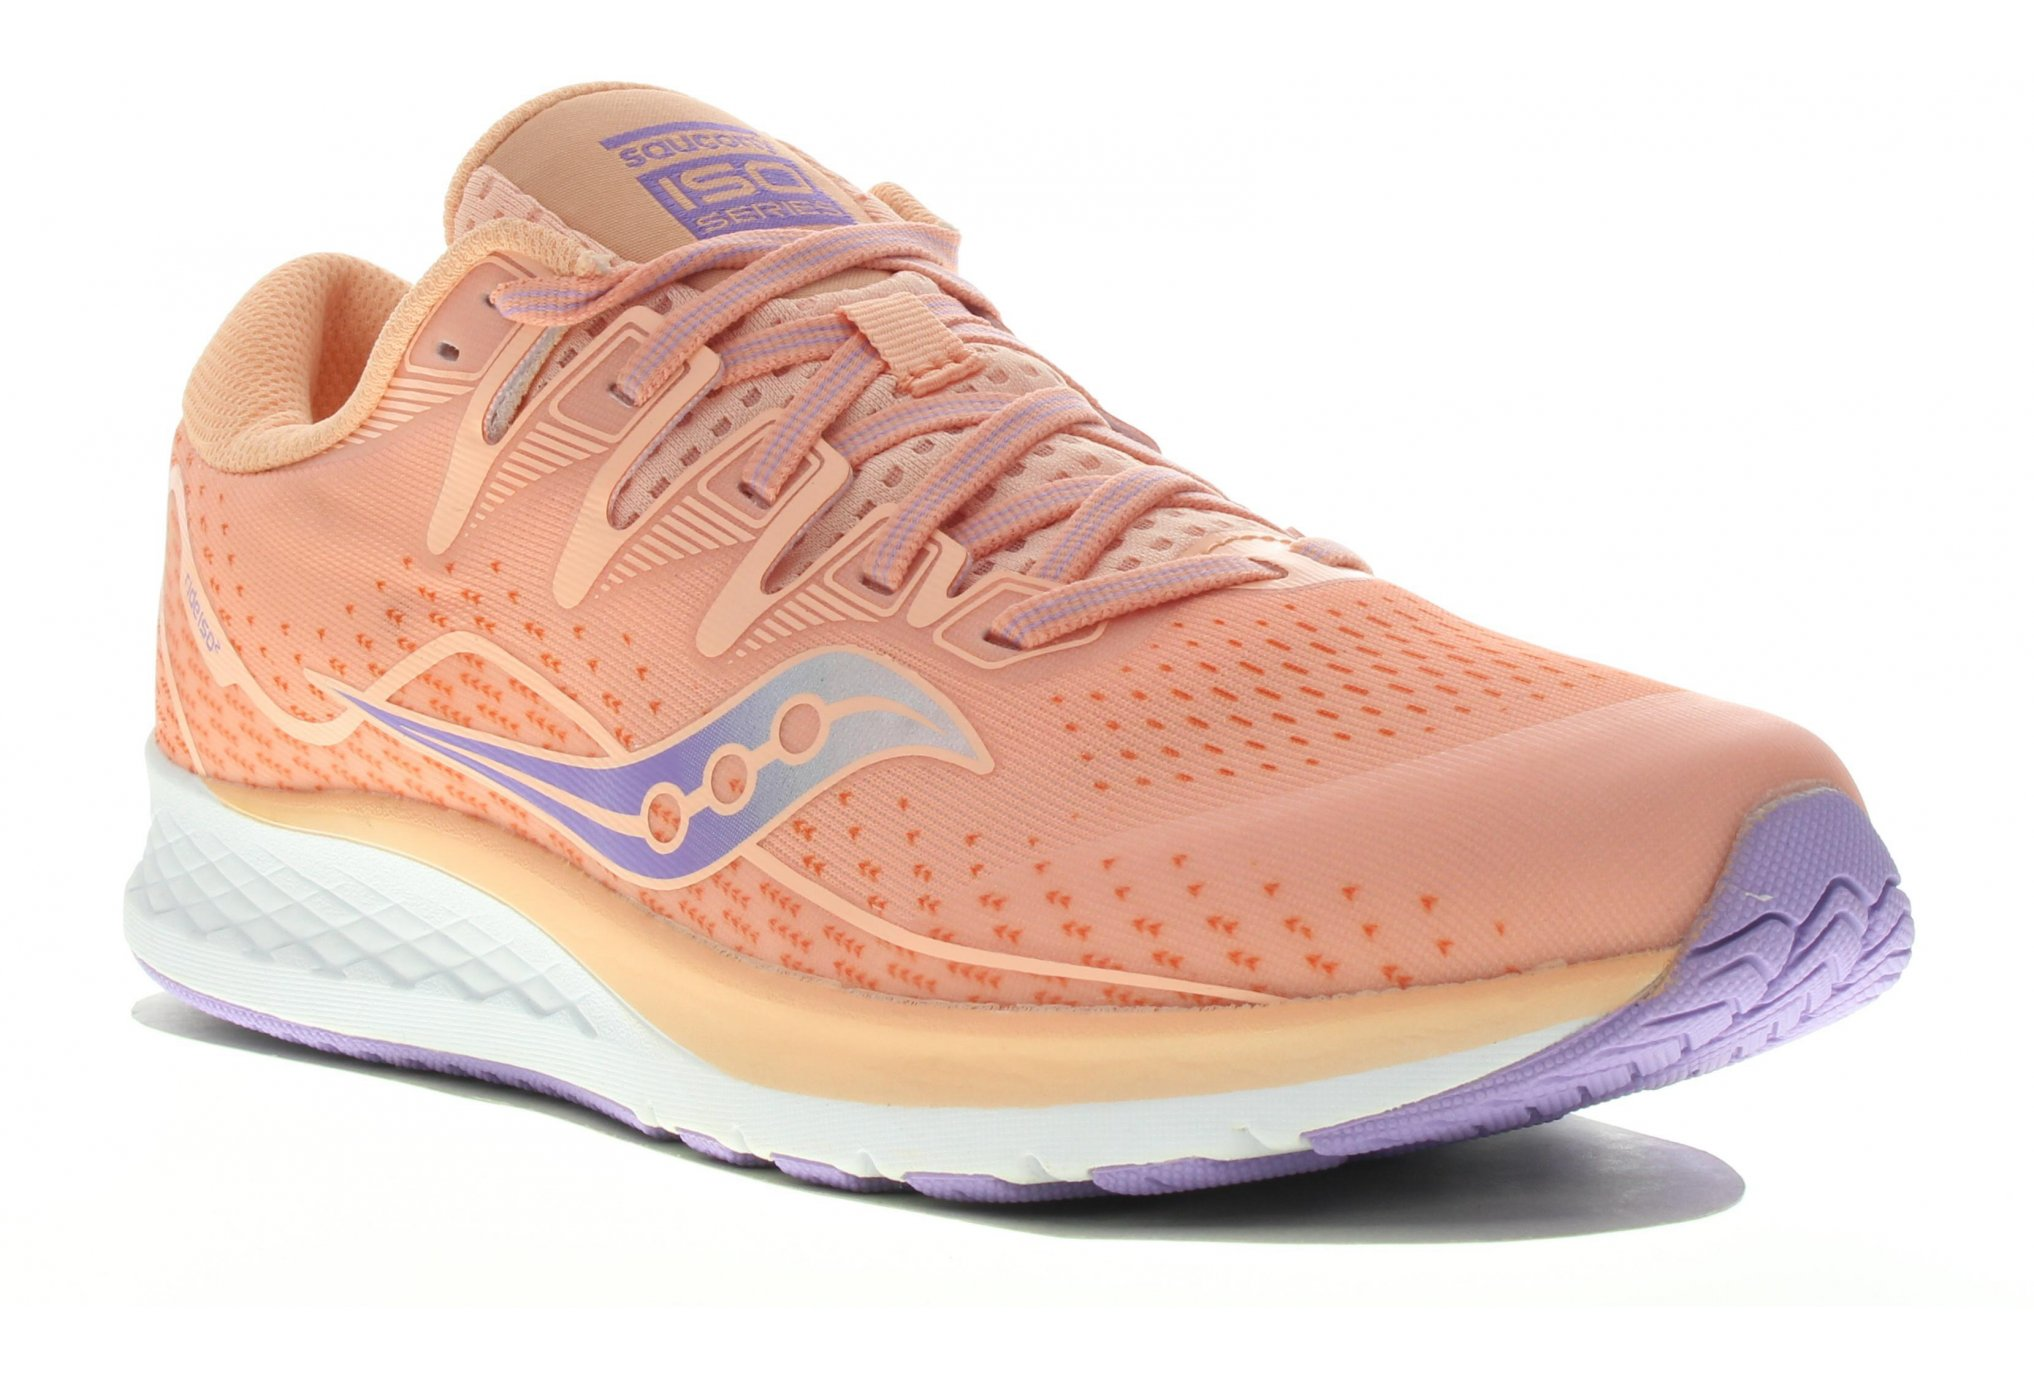 Saucony Ride ISO 2 Fille Chaussures running femme